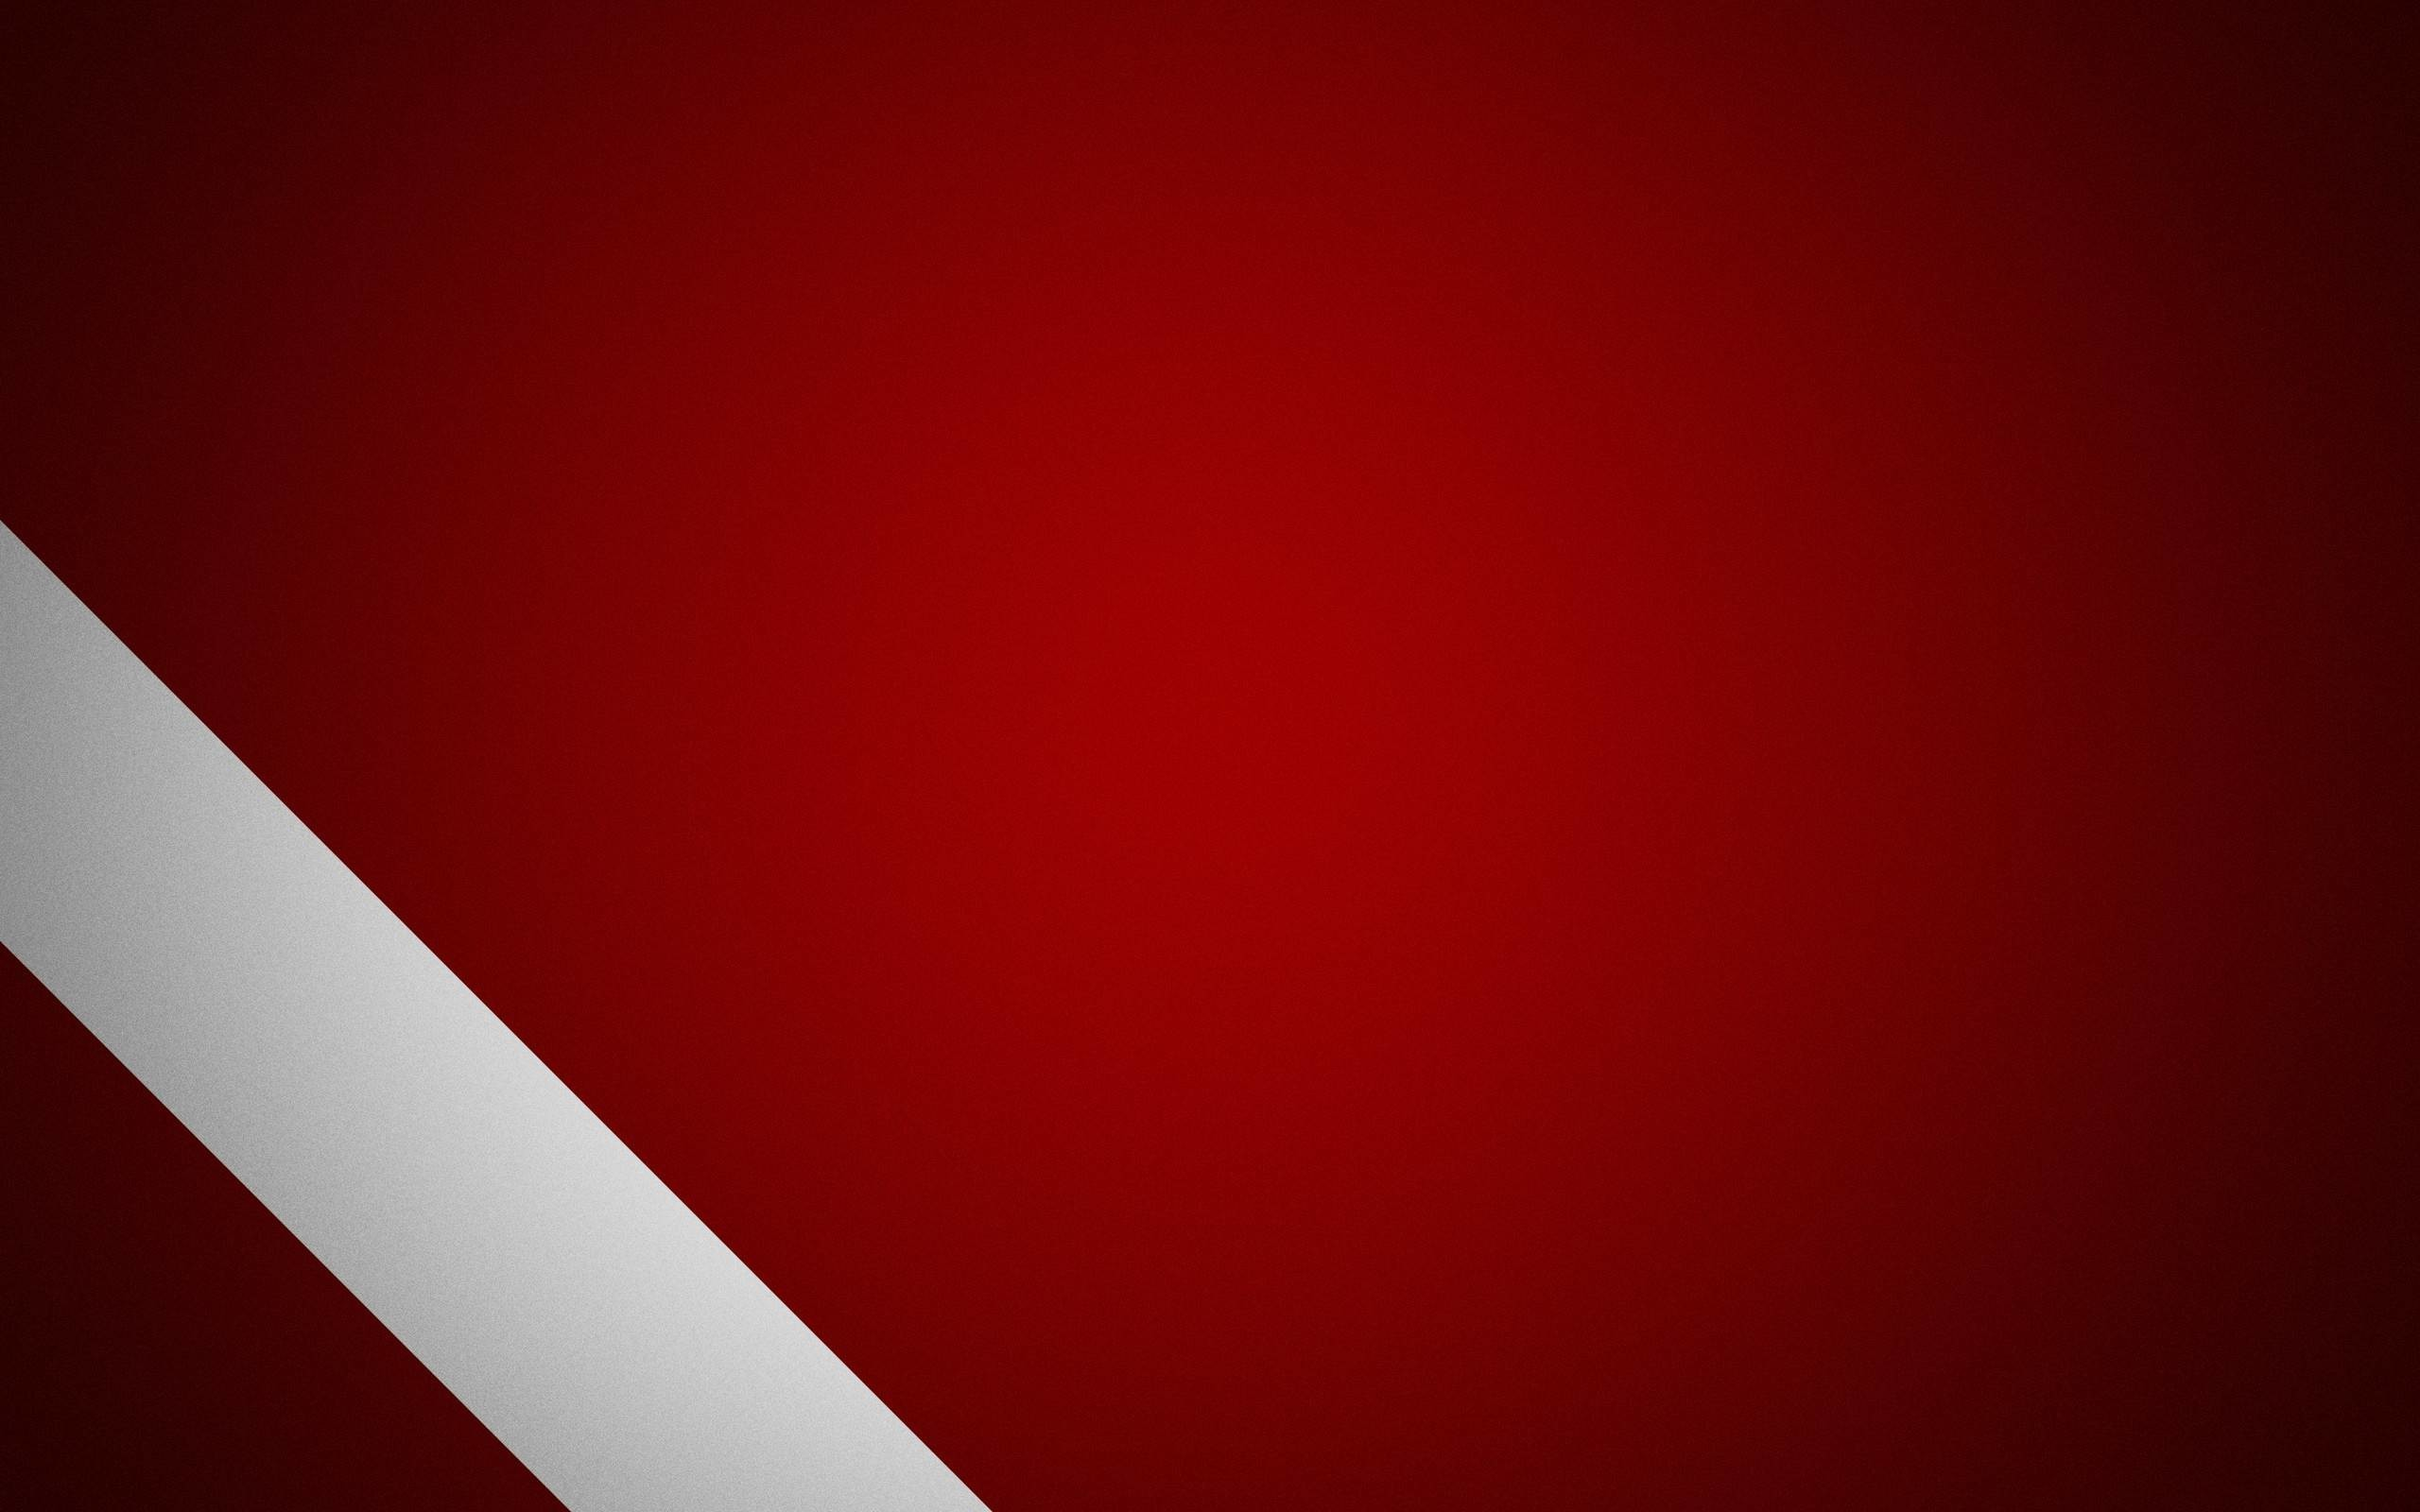 Wallpapers Abstract Red White Amp Black Walls Plox Typeon High